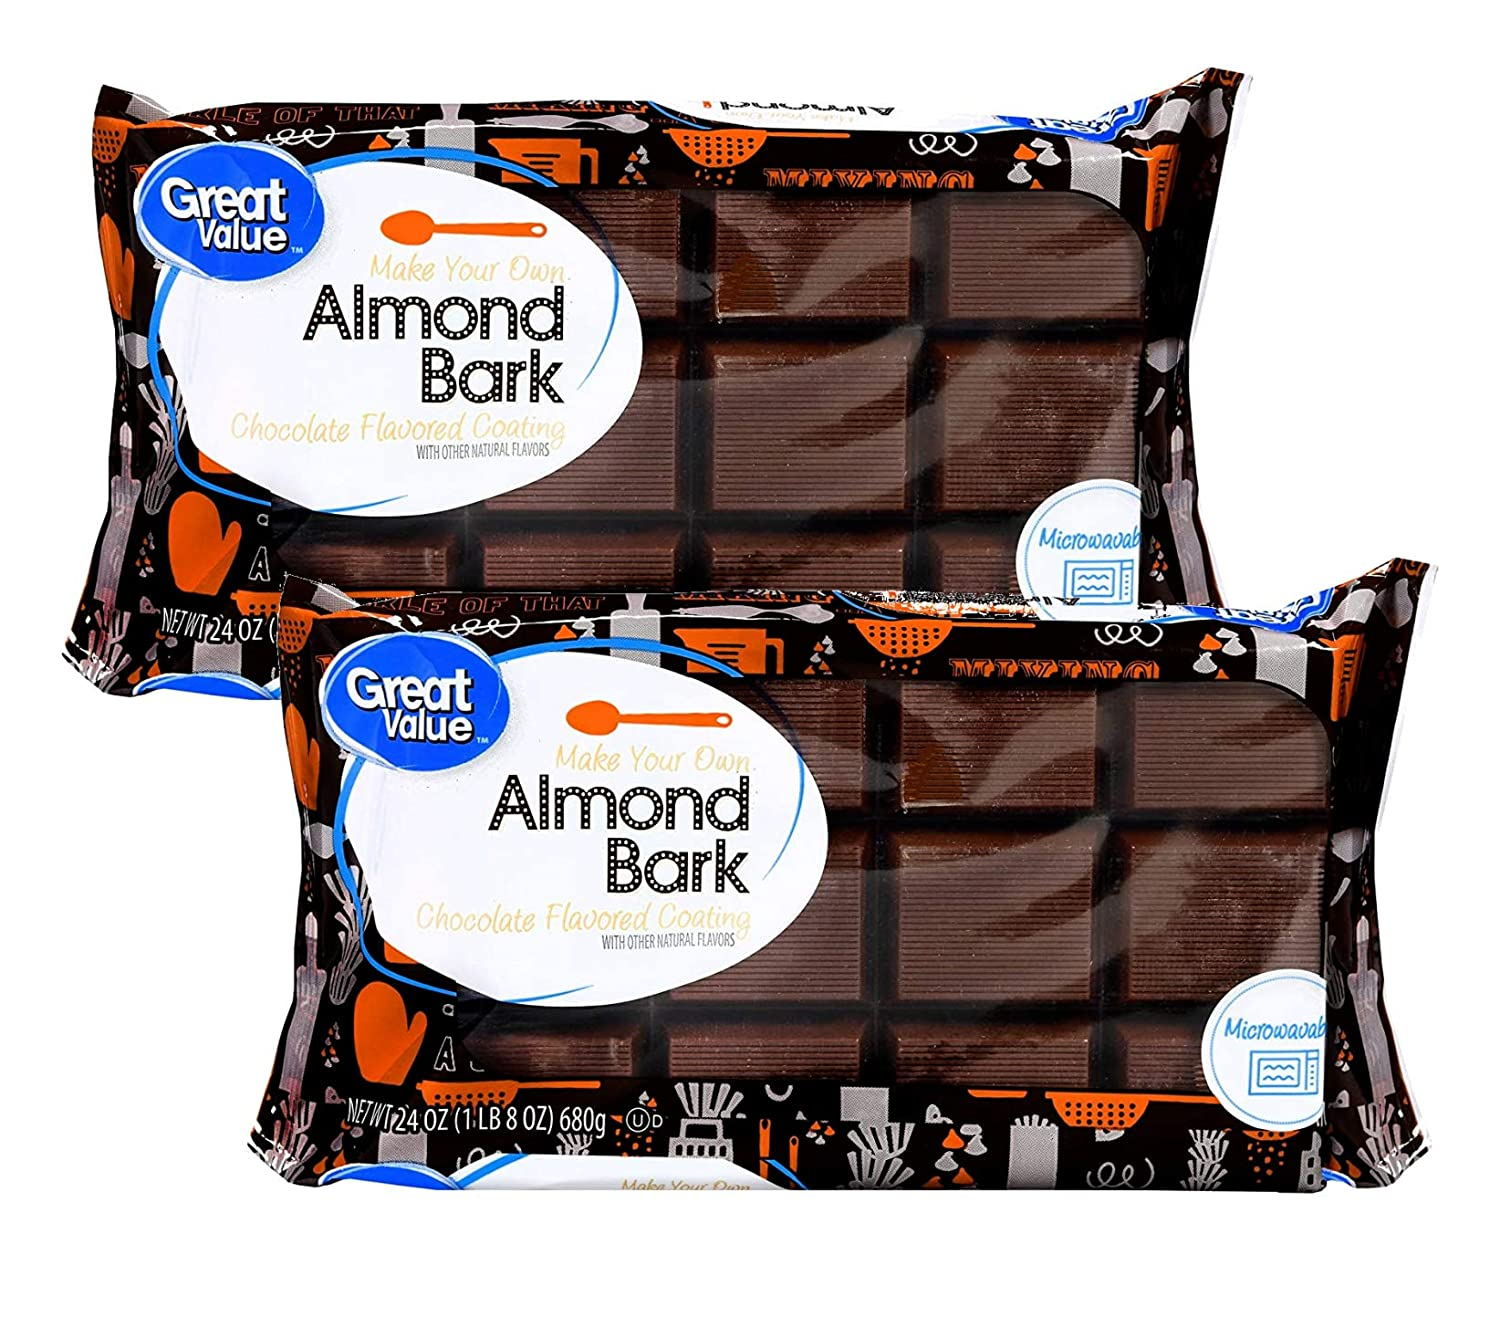 Great Value Make Your Own Almond Bark, Microwaveable Chocolate Coating for Baking, Toppings, Sweets - 2 Pck (48 oz)